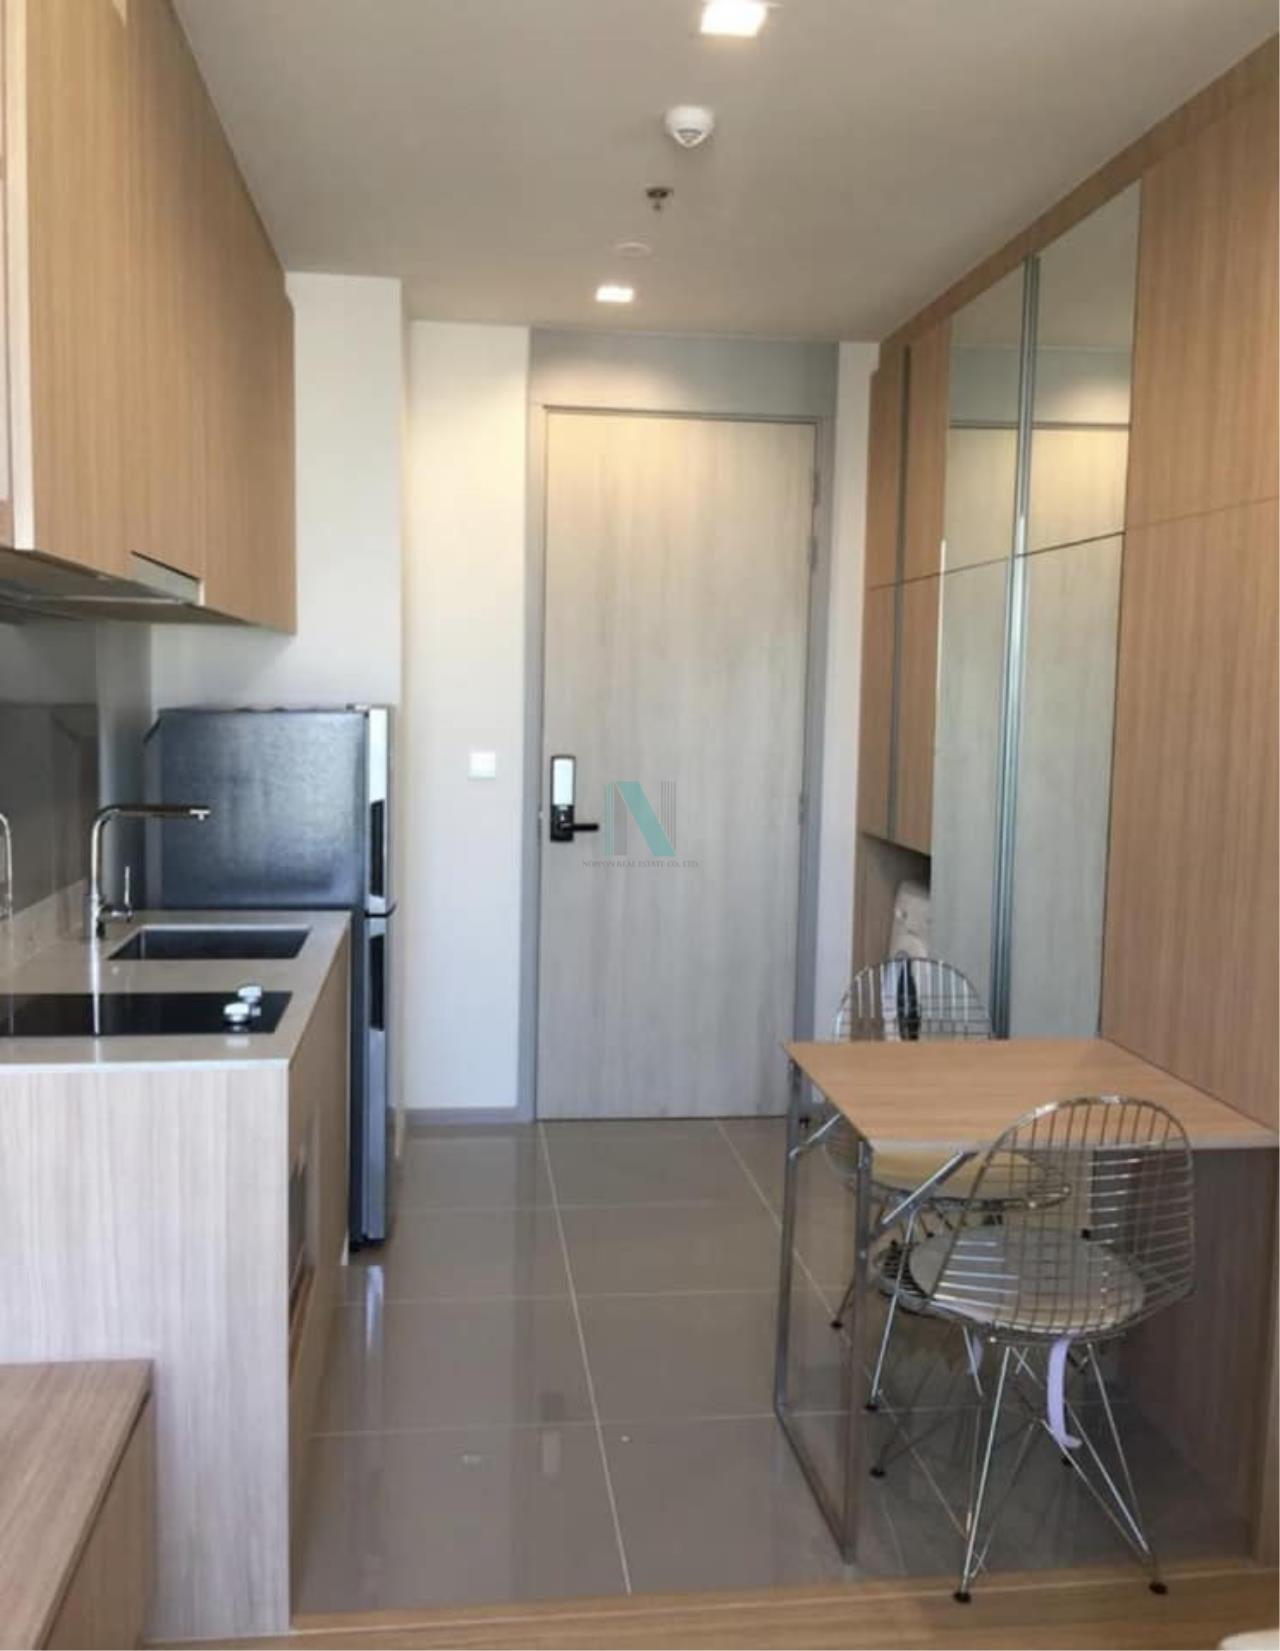 NOPPON REAL ESTATE CO.,LTD.  Agency's M Jatujak Condo for rent, 1 bedroom, 32 sq.m., fully furnished, ready to move in, near BTS Mo chit 2